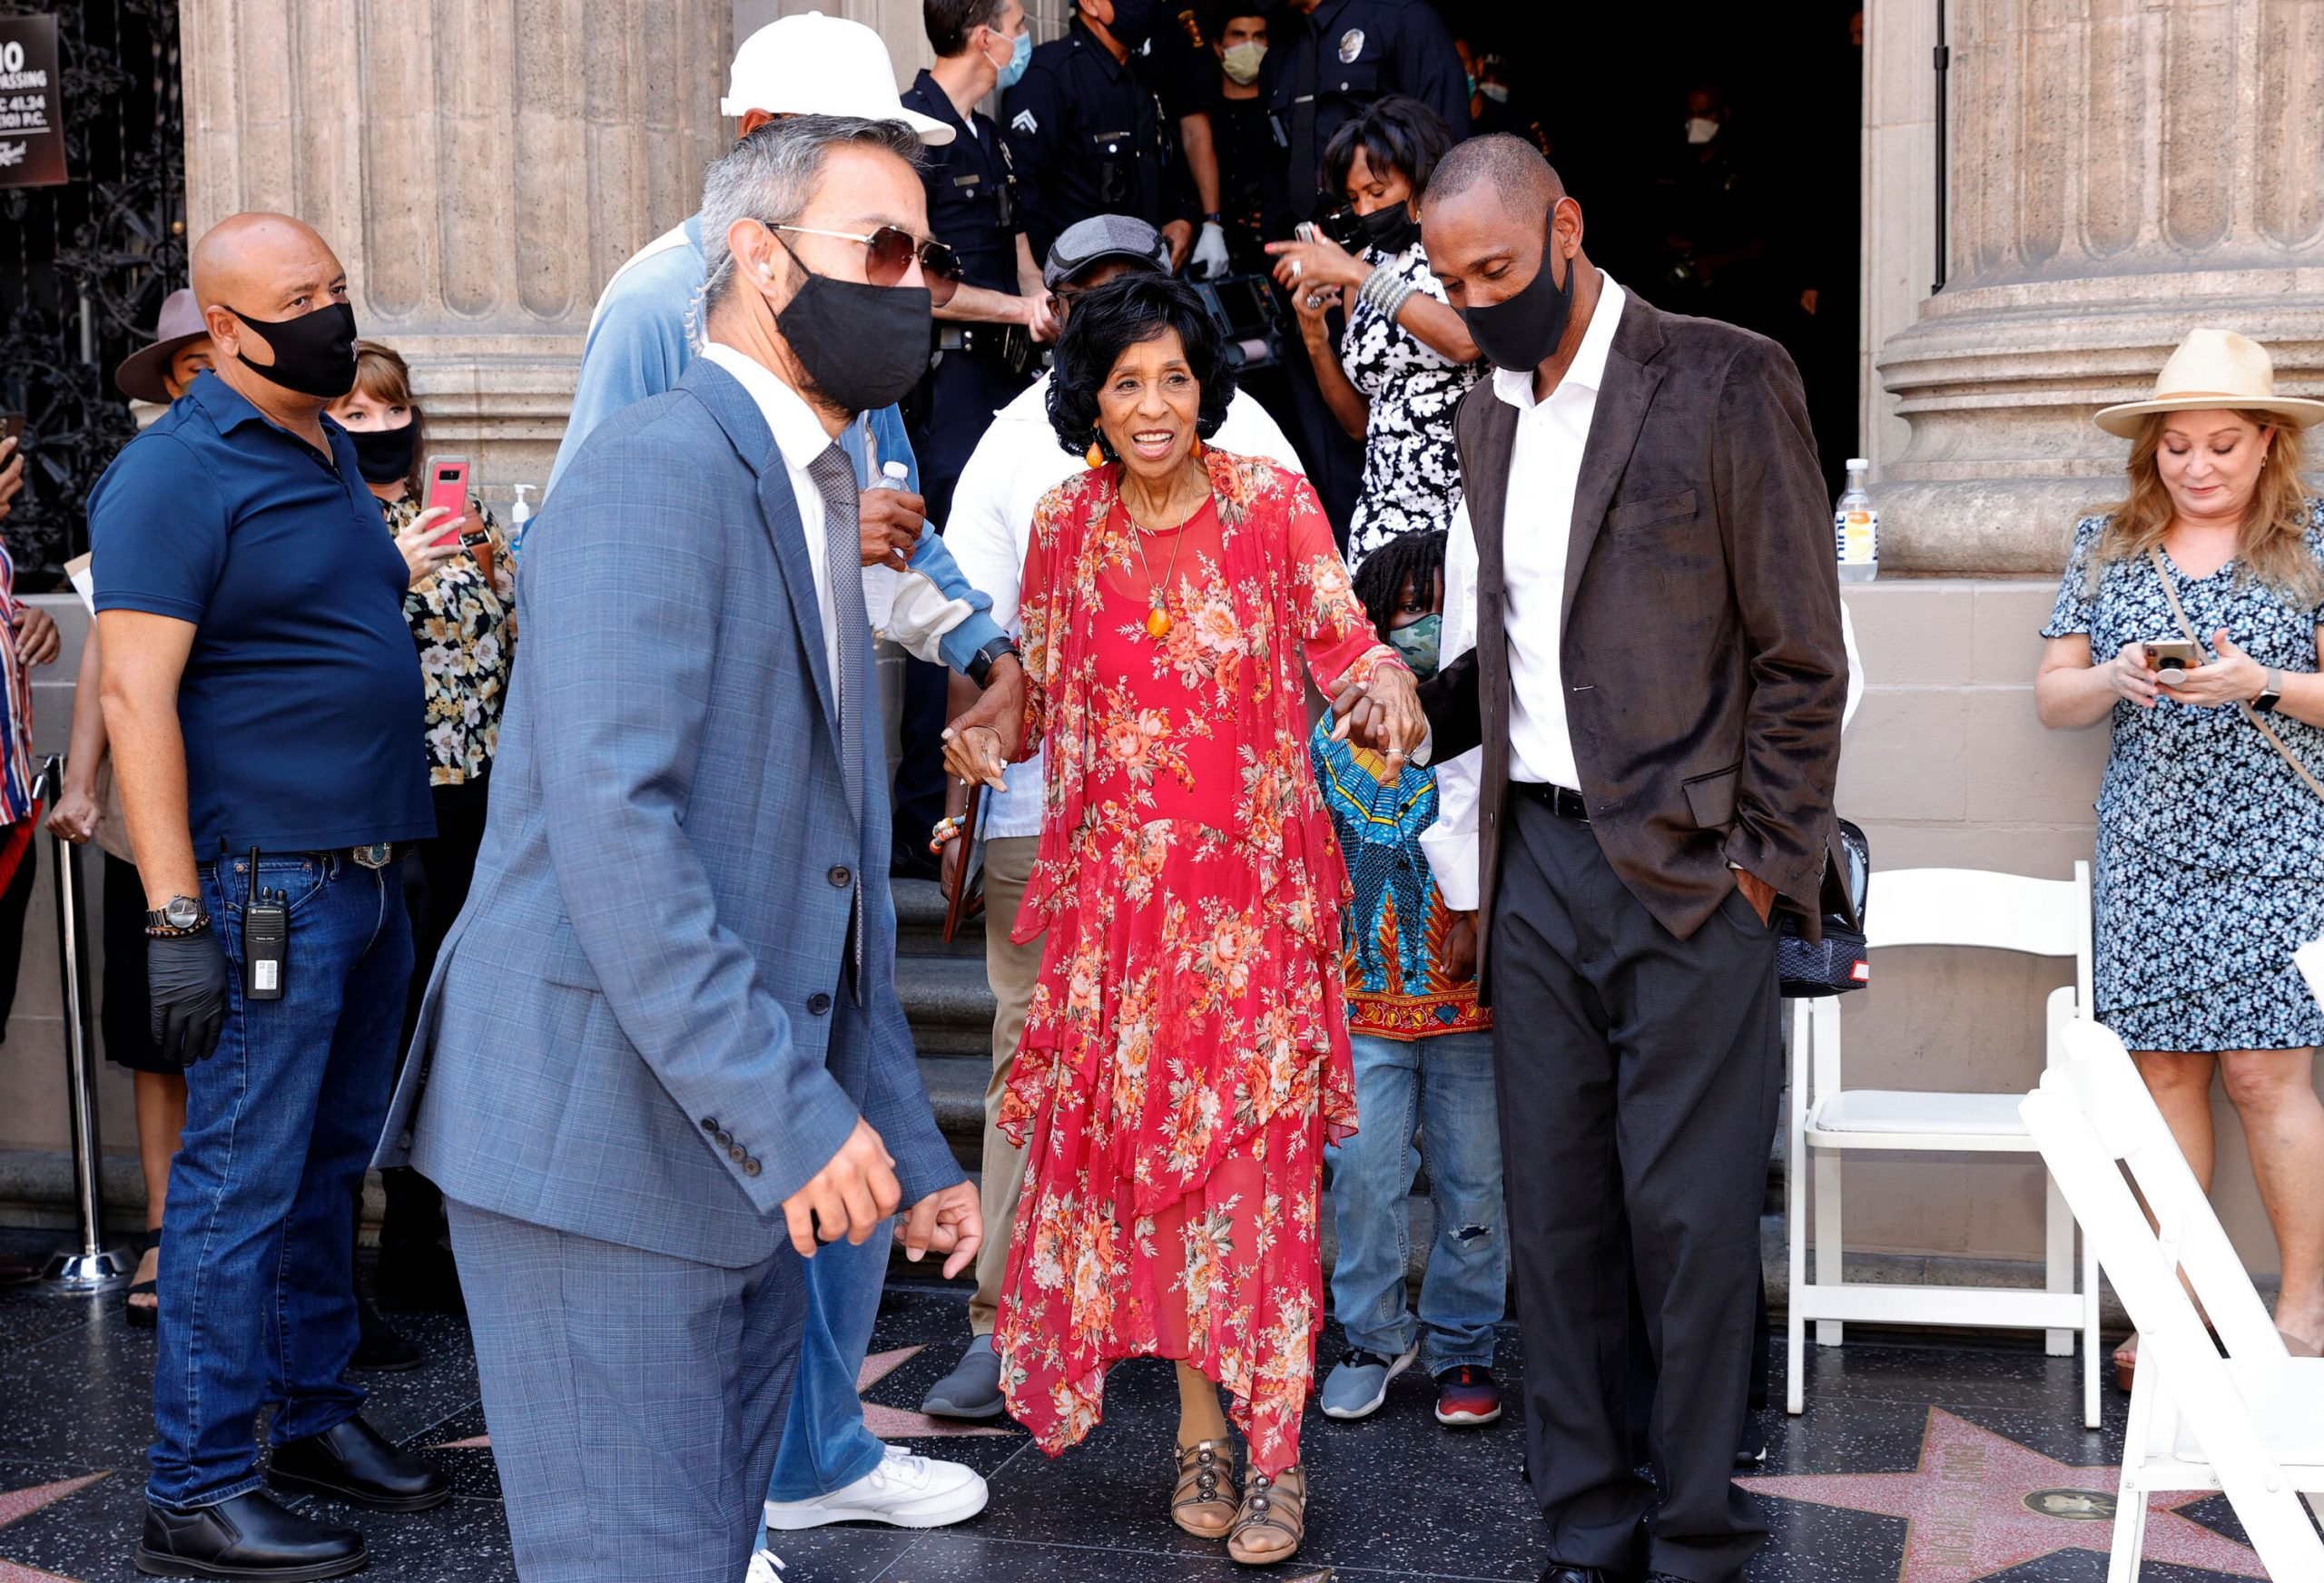 <i>Amy Sussman/Getty Images</i><br/>Marla Gibbs was honored July 20 with a star on the Hollywood Walk of Fame.